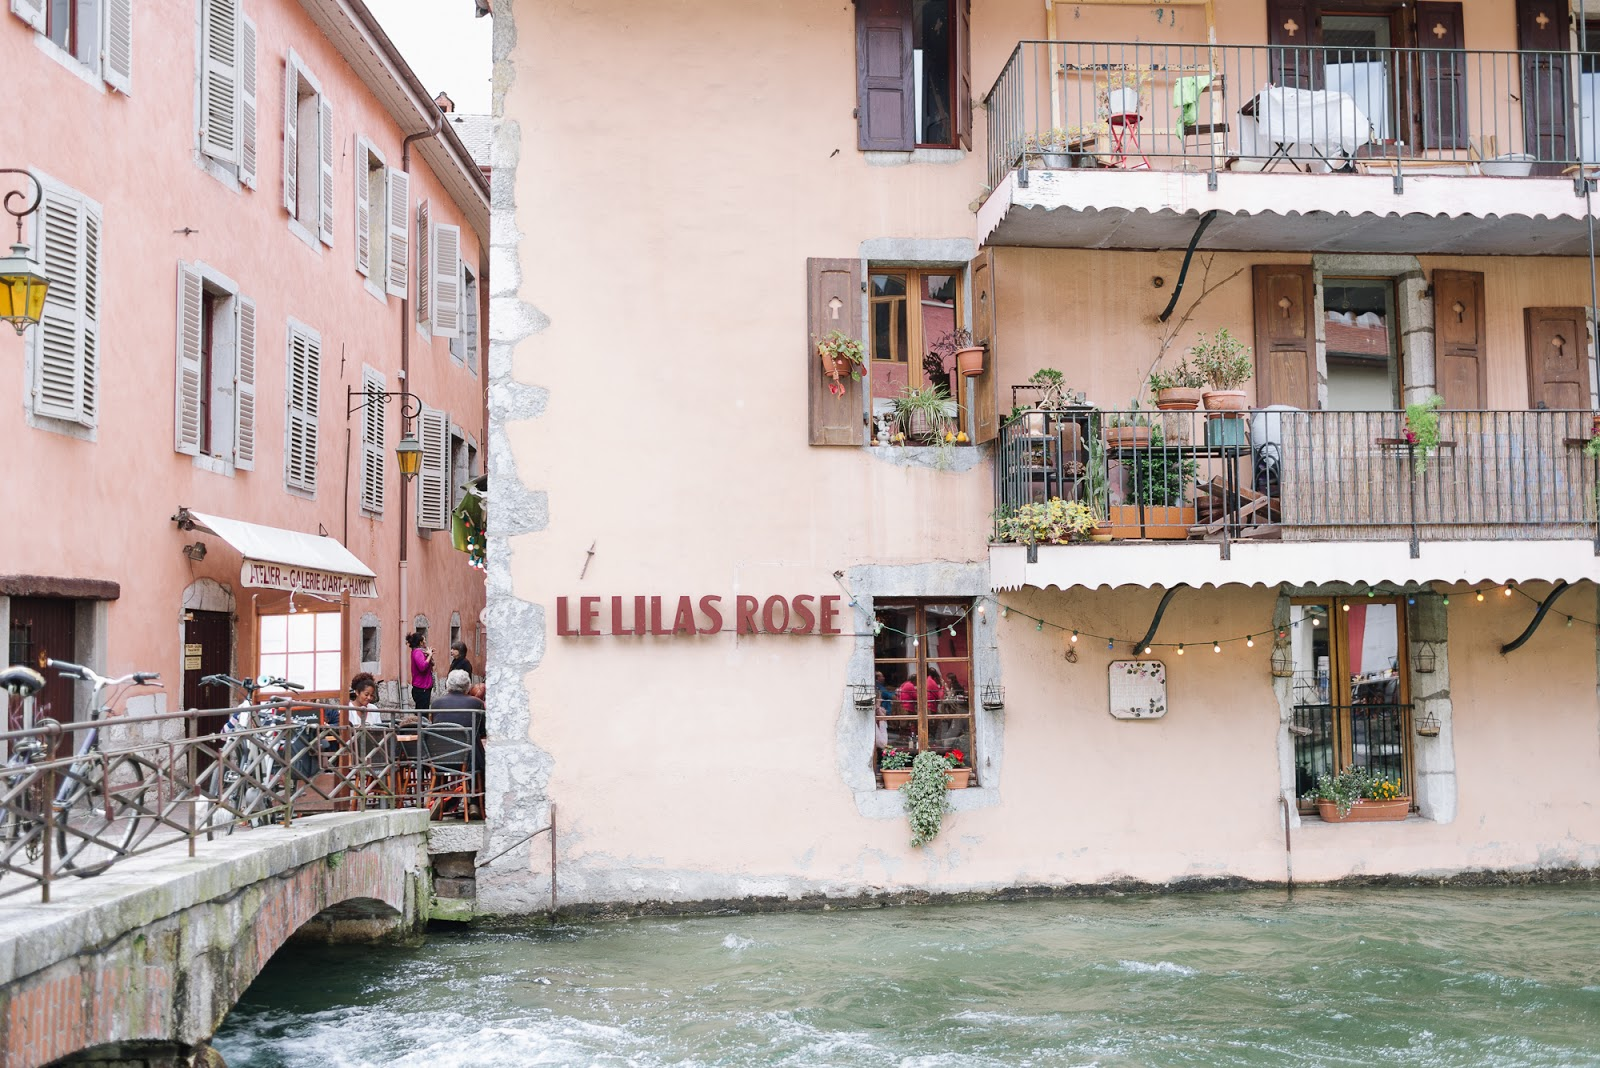 Beautyosaurus Lex-Alex Good-Lifestyle-Travel-TravelBloggers-Lbloggers-Annecy-France